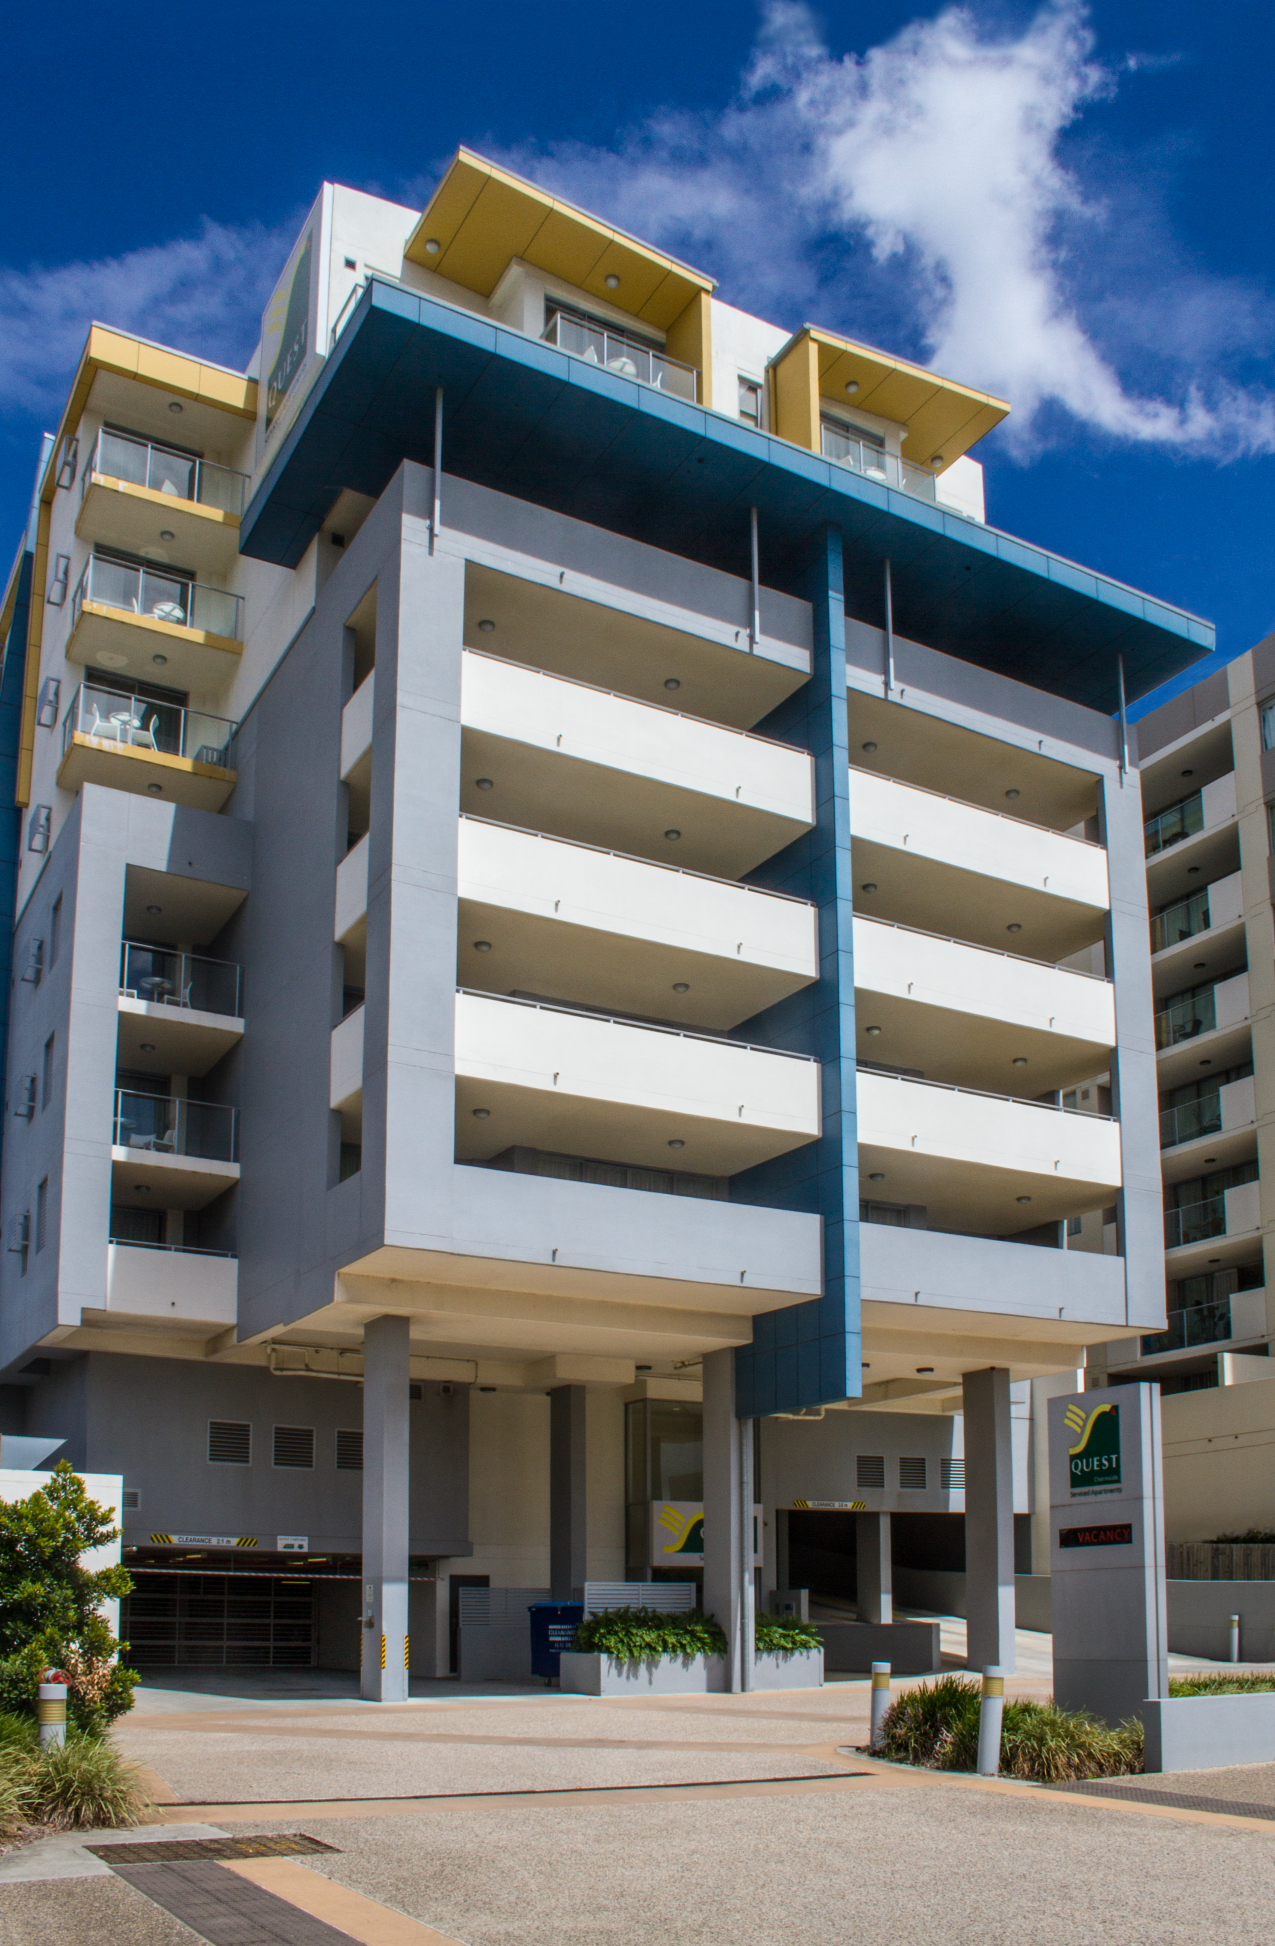 Chermside Serviced Apartments | Chermside Accommodation ...